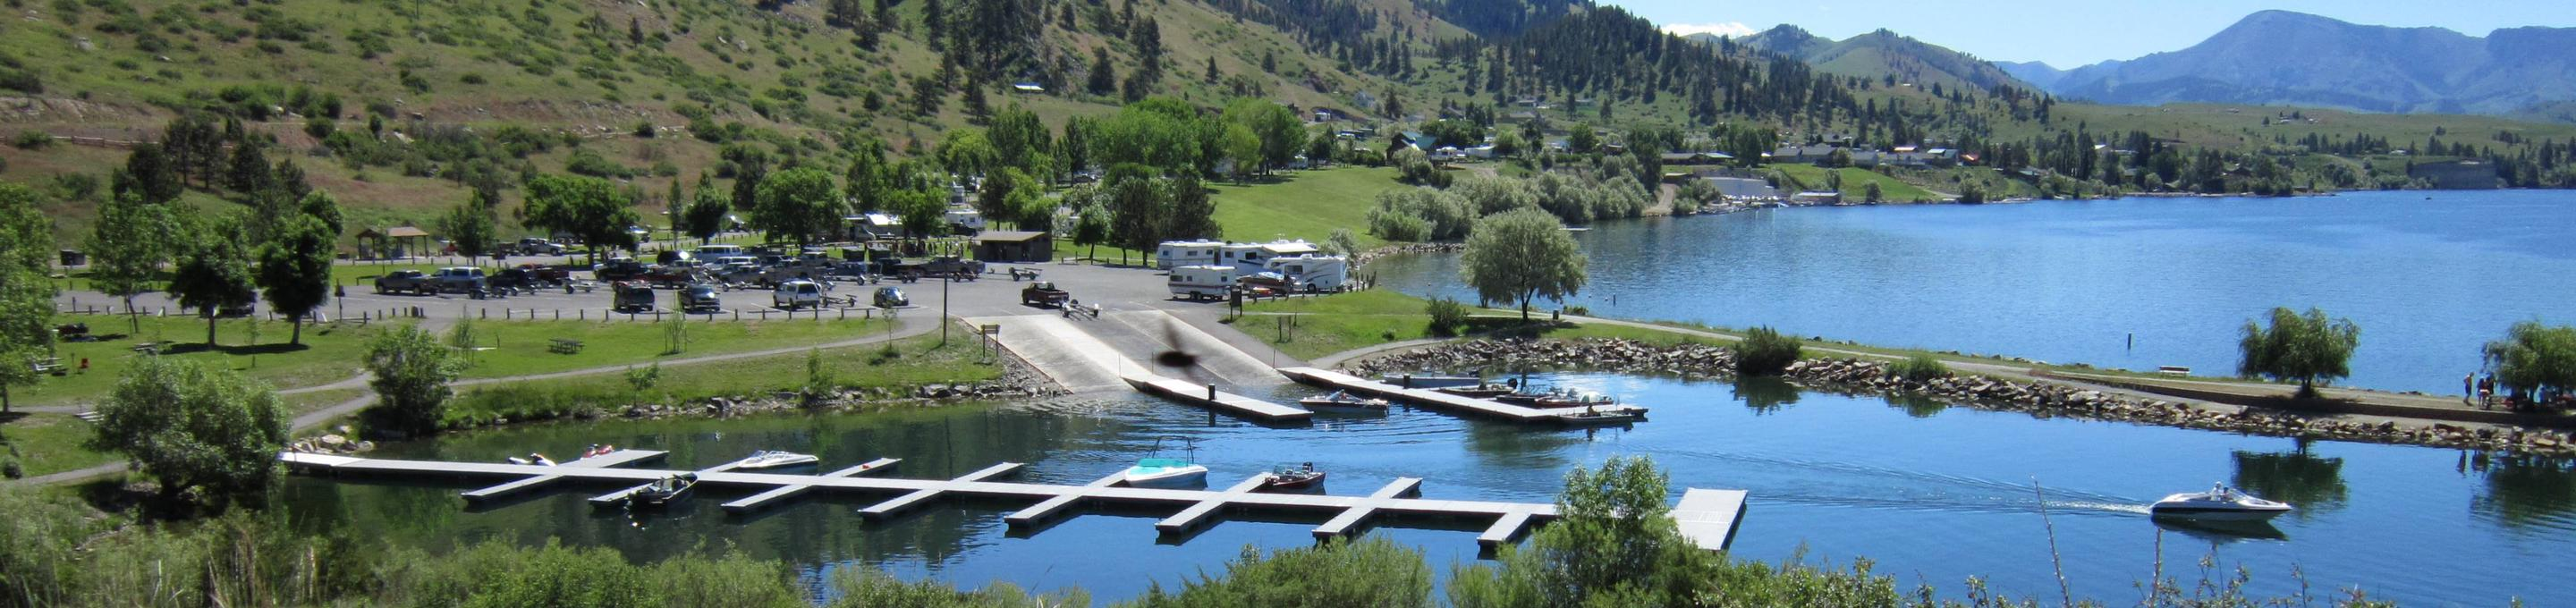 Overview of BLM Holter Lake Campground with dock system in the foreground. Large paved parking lot and boat ramp adjacent to the docks. Campground in the background available to accomodate RVs and tents. BLM Holter Lake Campground